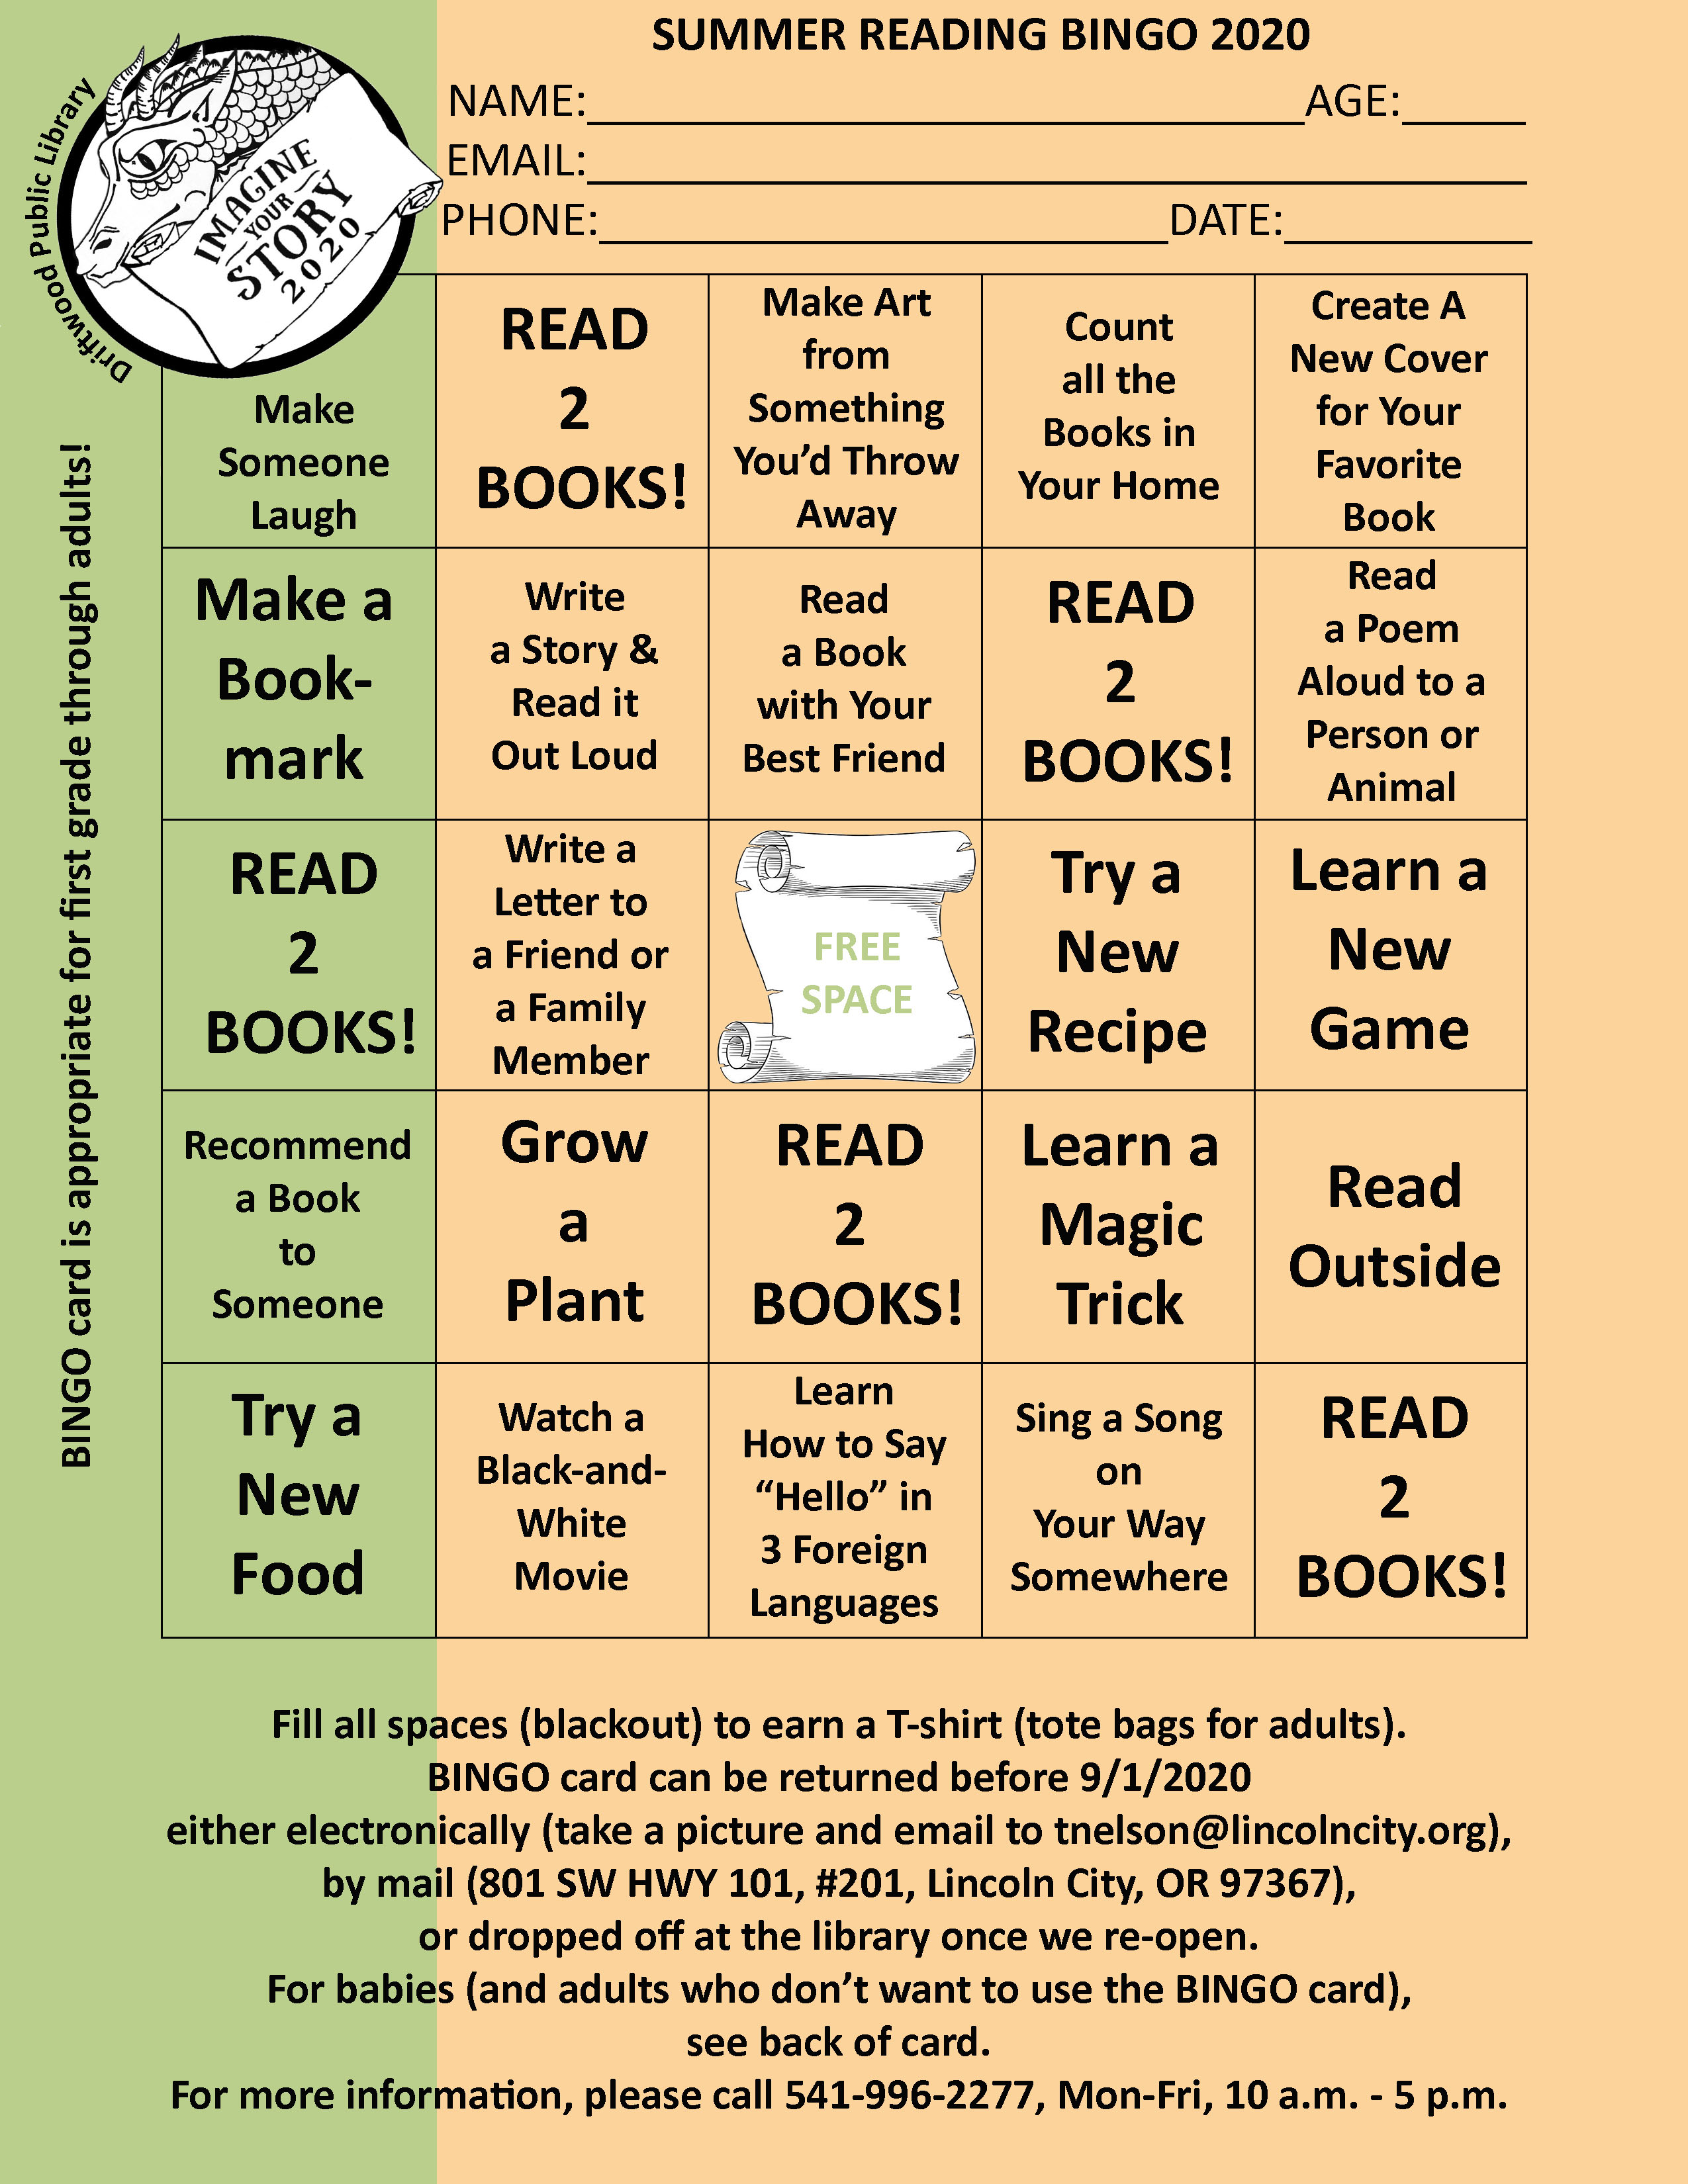 Summer Reading 2020 Bingo Card Front Side